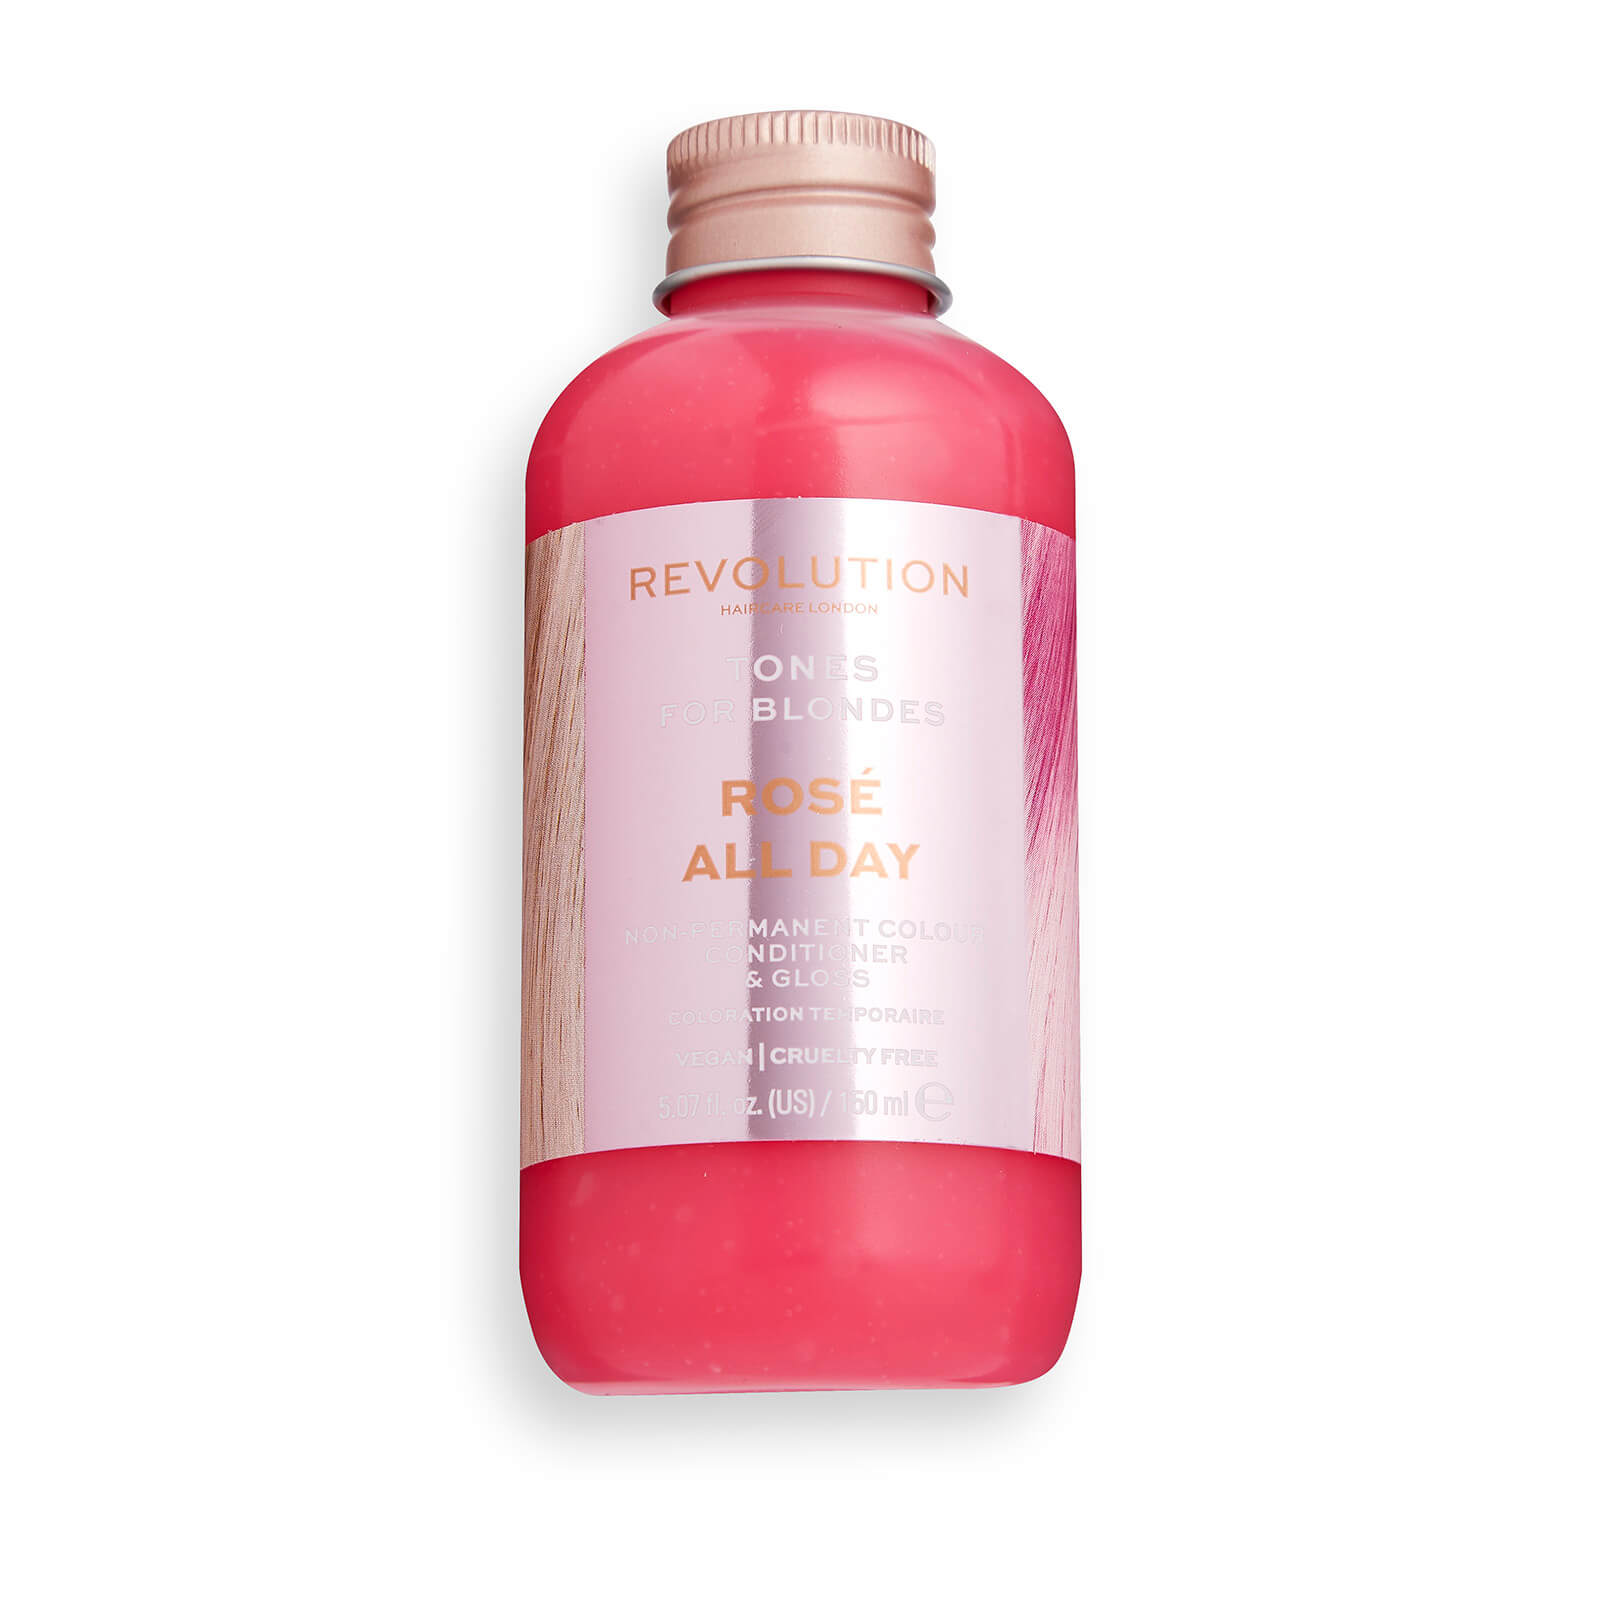 Revolution HairTonesfor Blondes 150ml (Various Shades) - Rose All Day